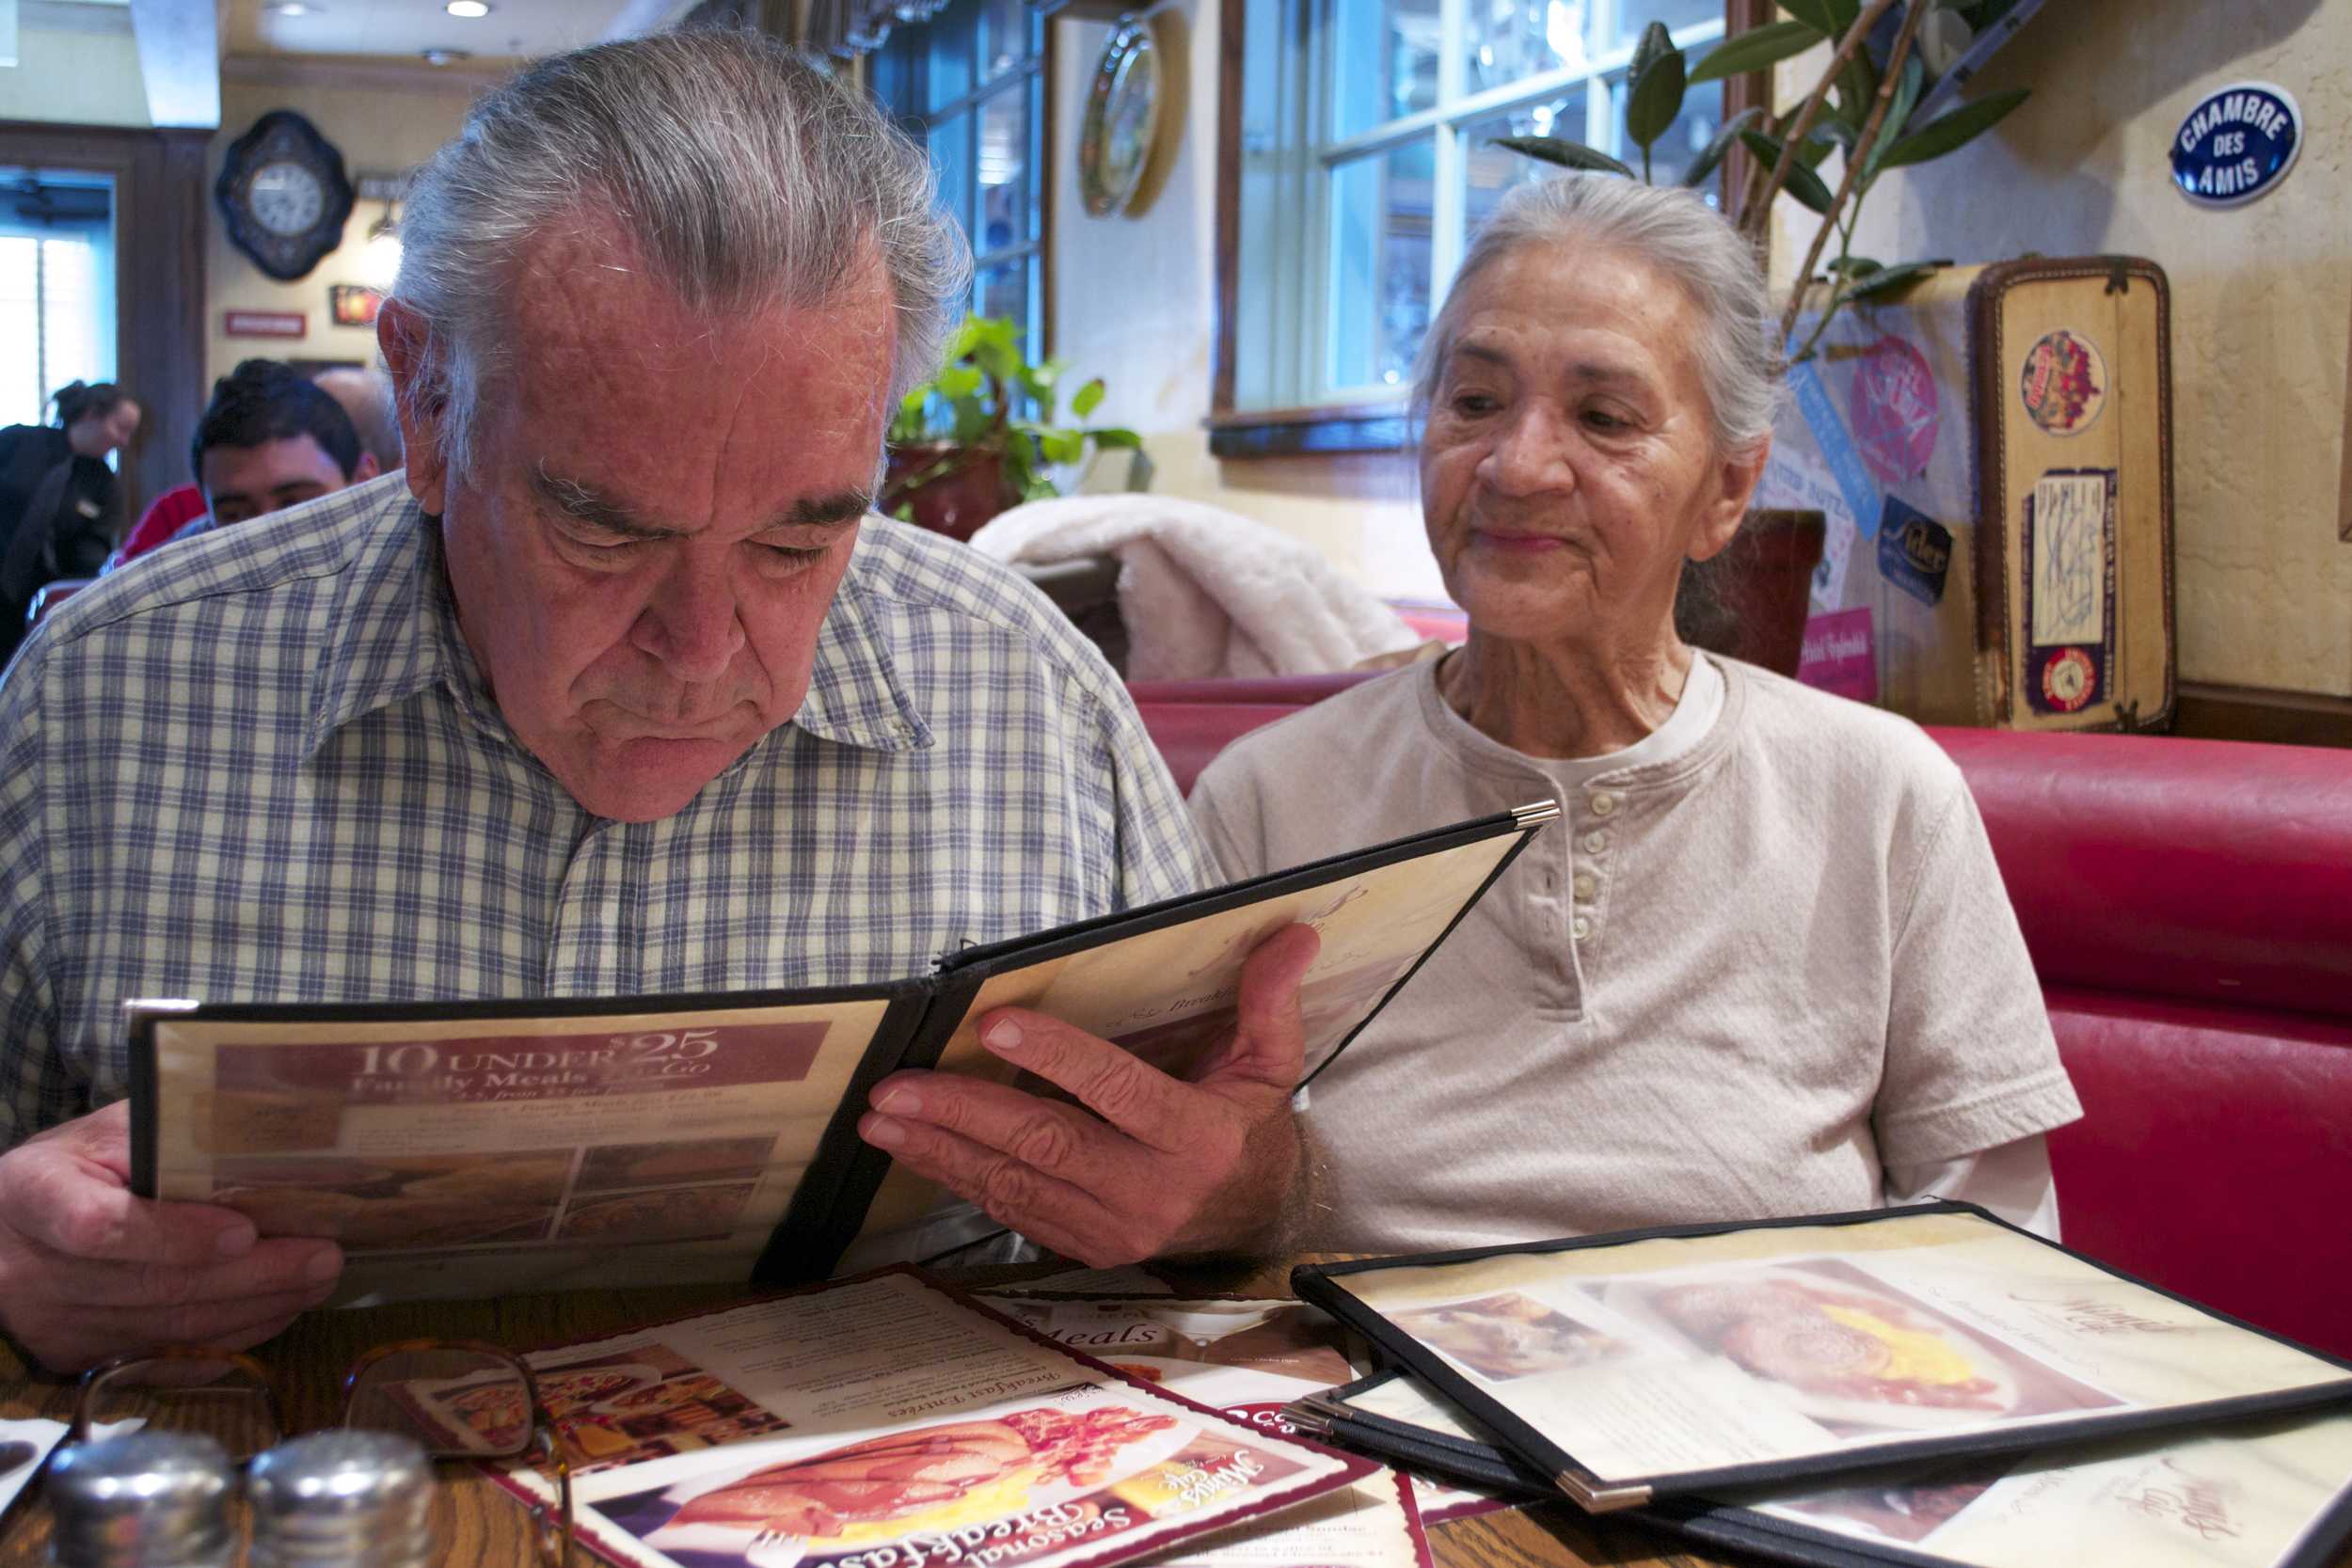 Roland often takes Gladys to Mimi's Cafe for breakfast because she enjoyed doing it in the past. © Nigar Fatali